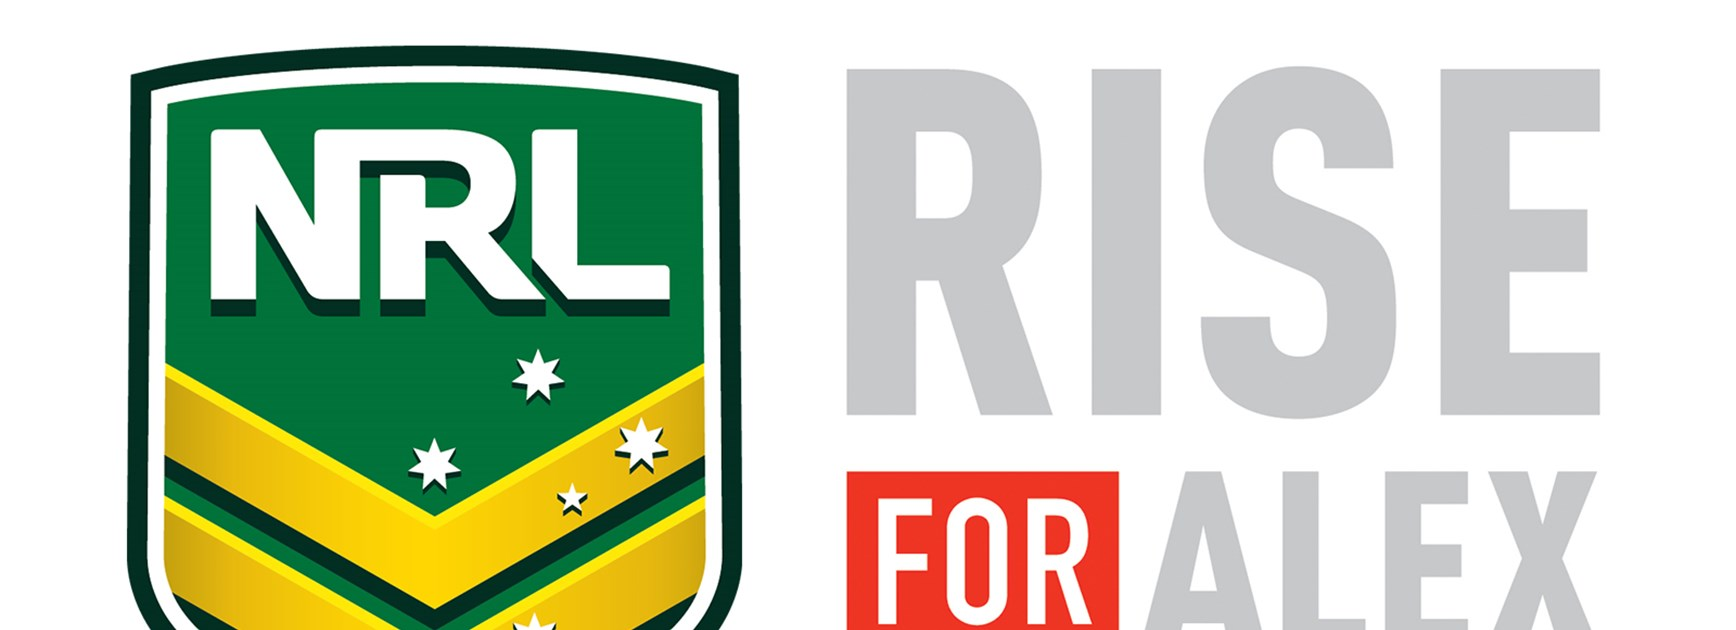 The NRL supports the NRL Foundation and the RiseForAlex Foundation.